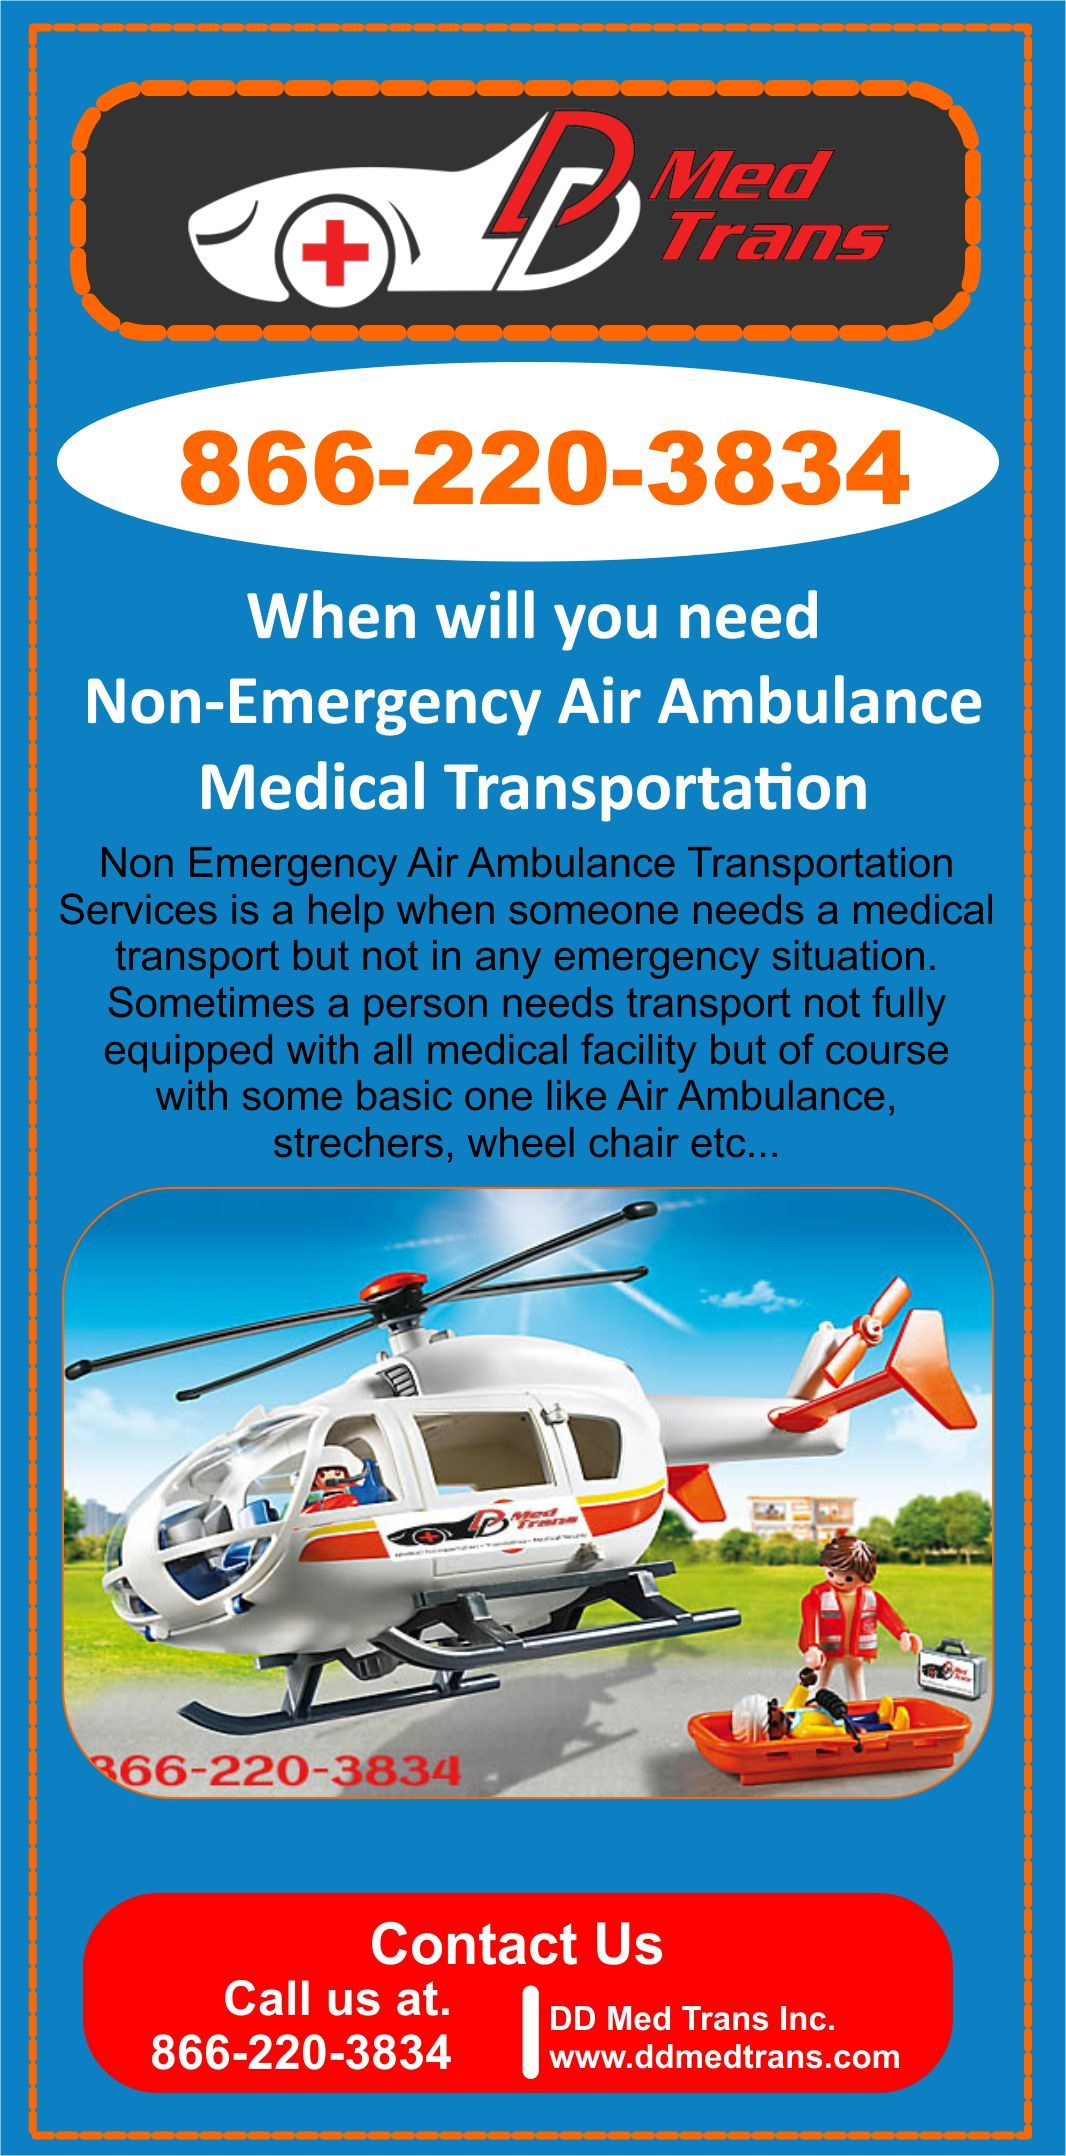 Let S Know About The Non Emergency Air Ambulance Transportation Service Offered By Ddmedtrans Medical Transportation Emergency Medical Transportation Services